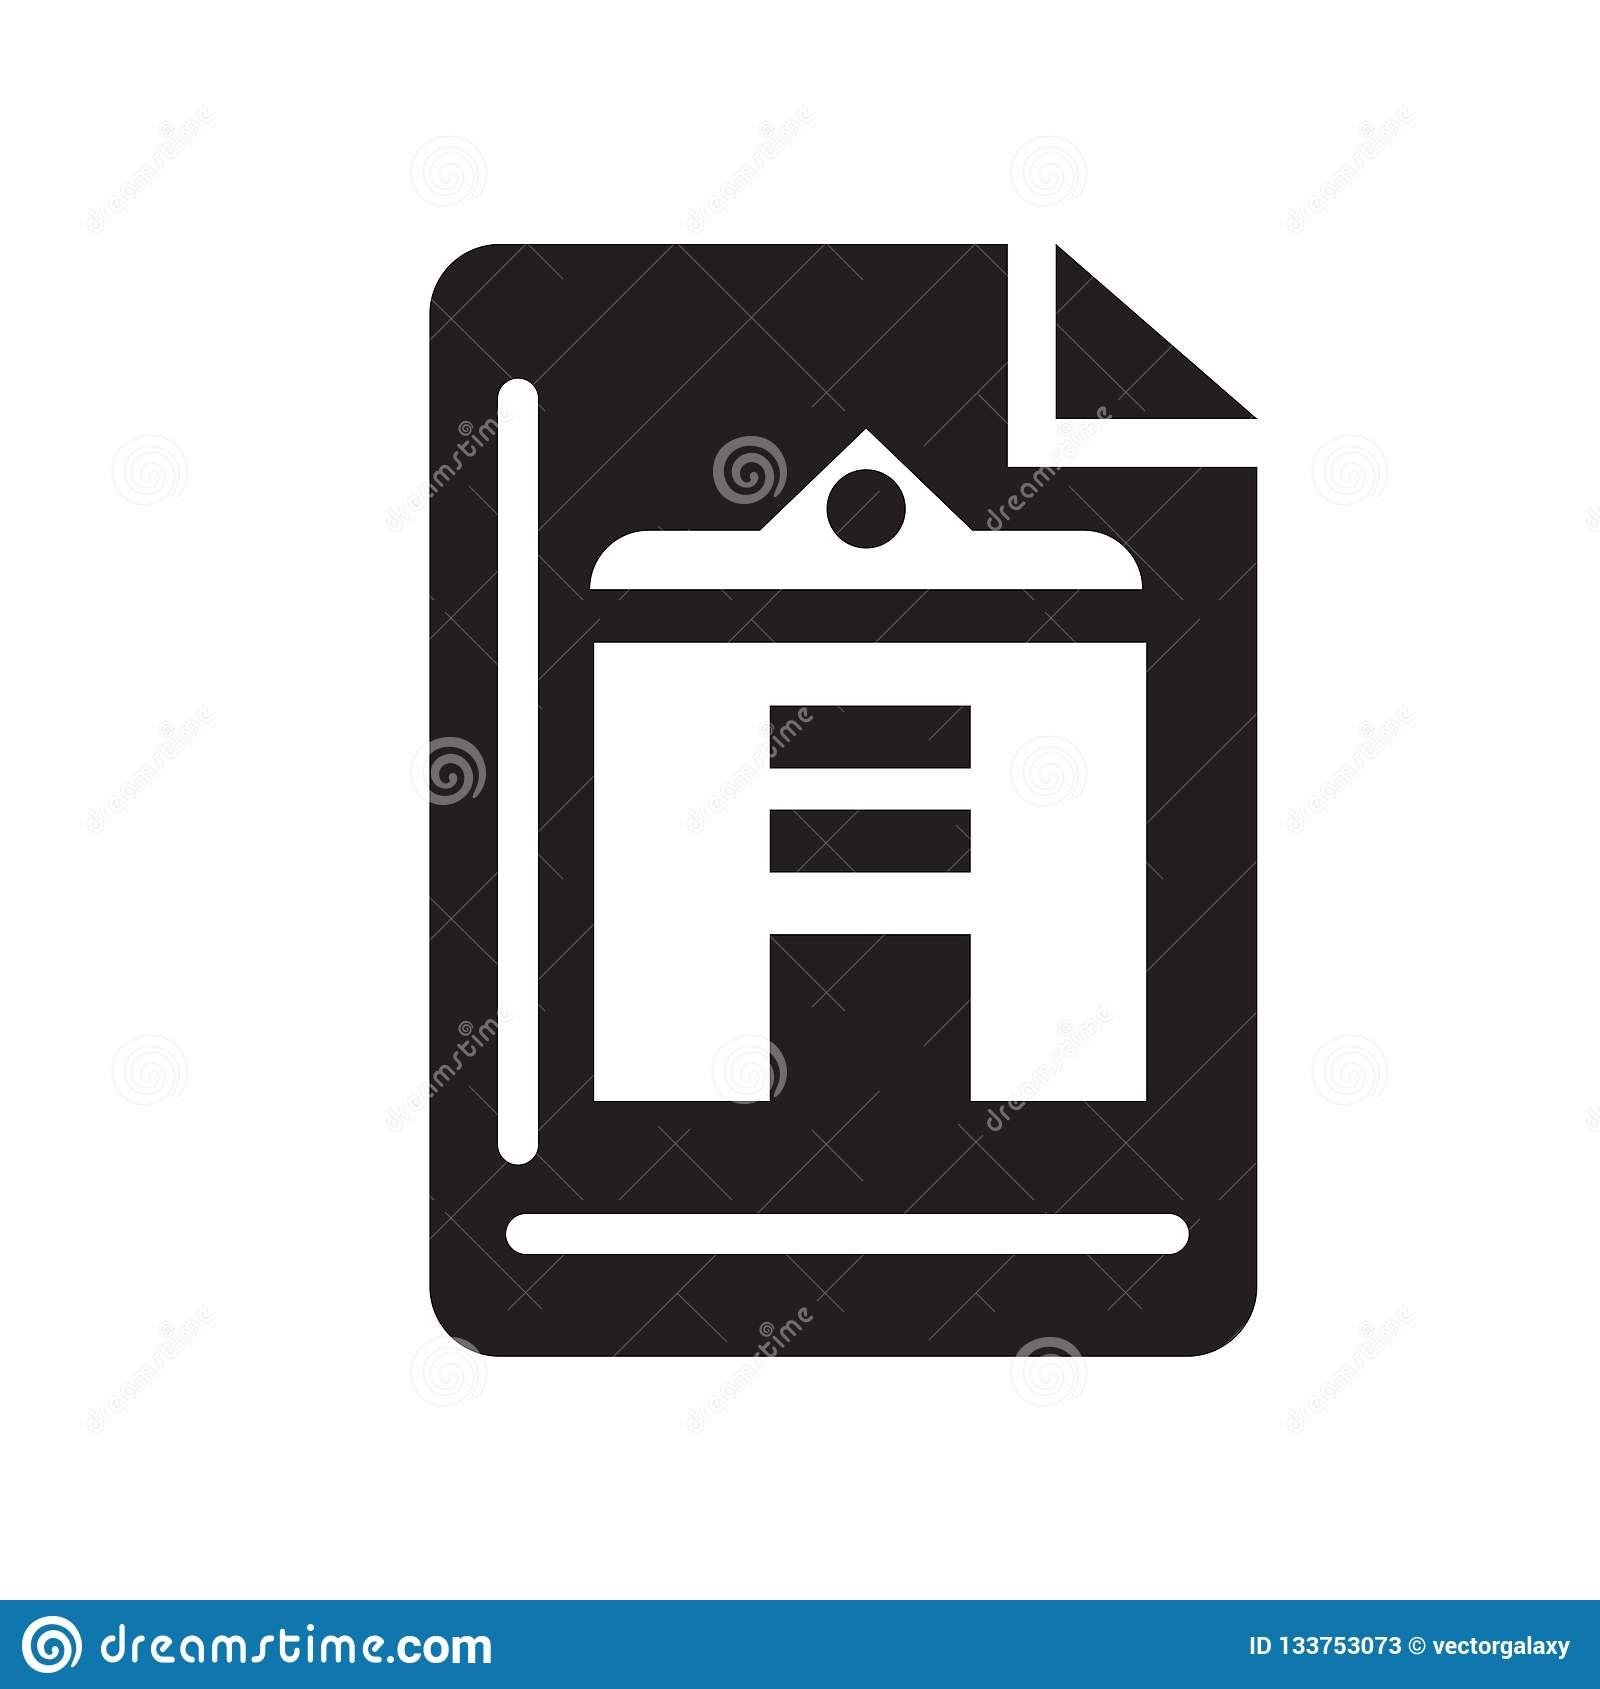 House Plan Icon Vector Isolated On White Background, House ... on construction icons, workshop icons, drafting icons, design icons, land icons, fireplace icons, farm icons, architecture icons, drawing icons, head icons, study icons, foundation icons, room icons, builder icons, remodeling icons, human icons, london icons, housing icons, household icons, architectural icons,